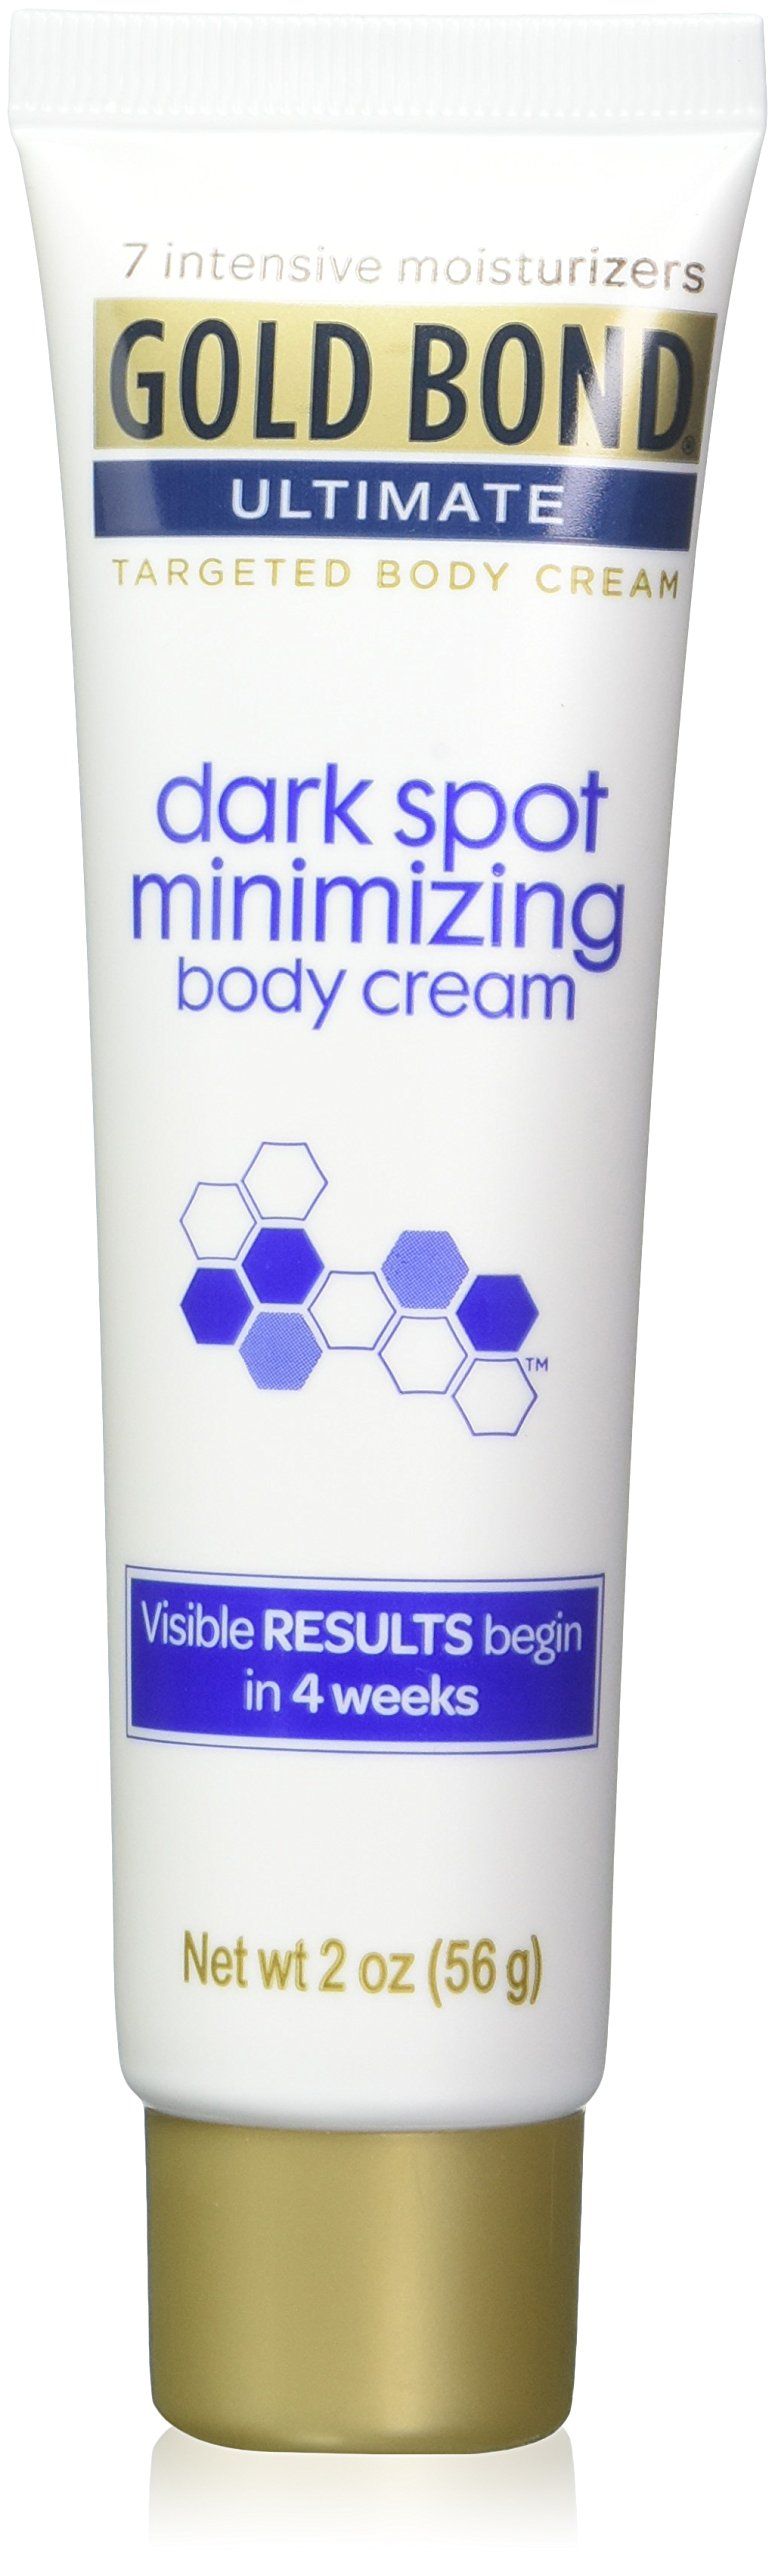 Gold Bond Ultimate Dark Spot Minimizing Body Cream 2 oz (Pack of 4)